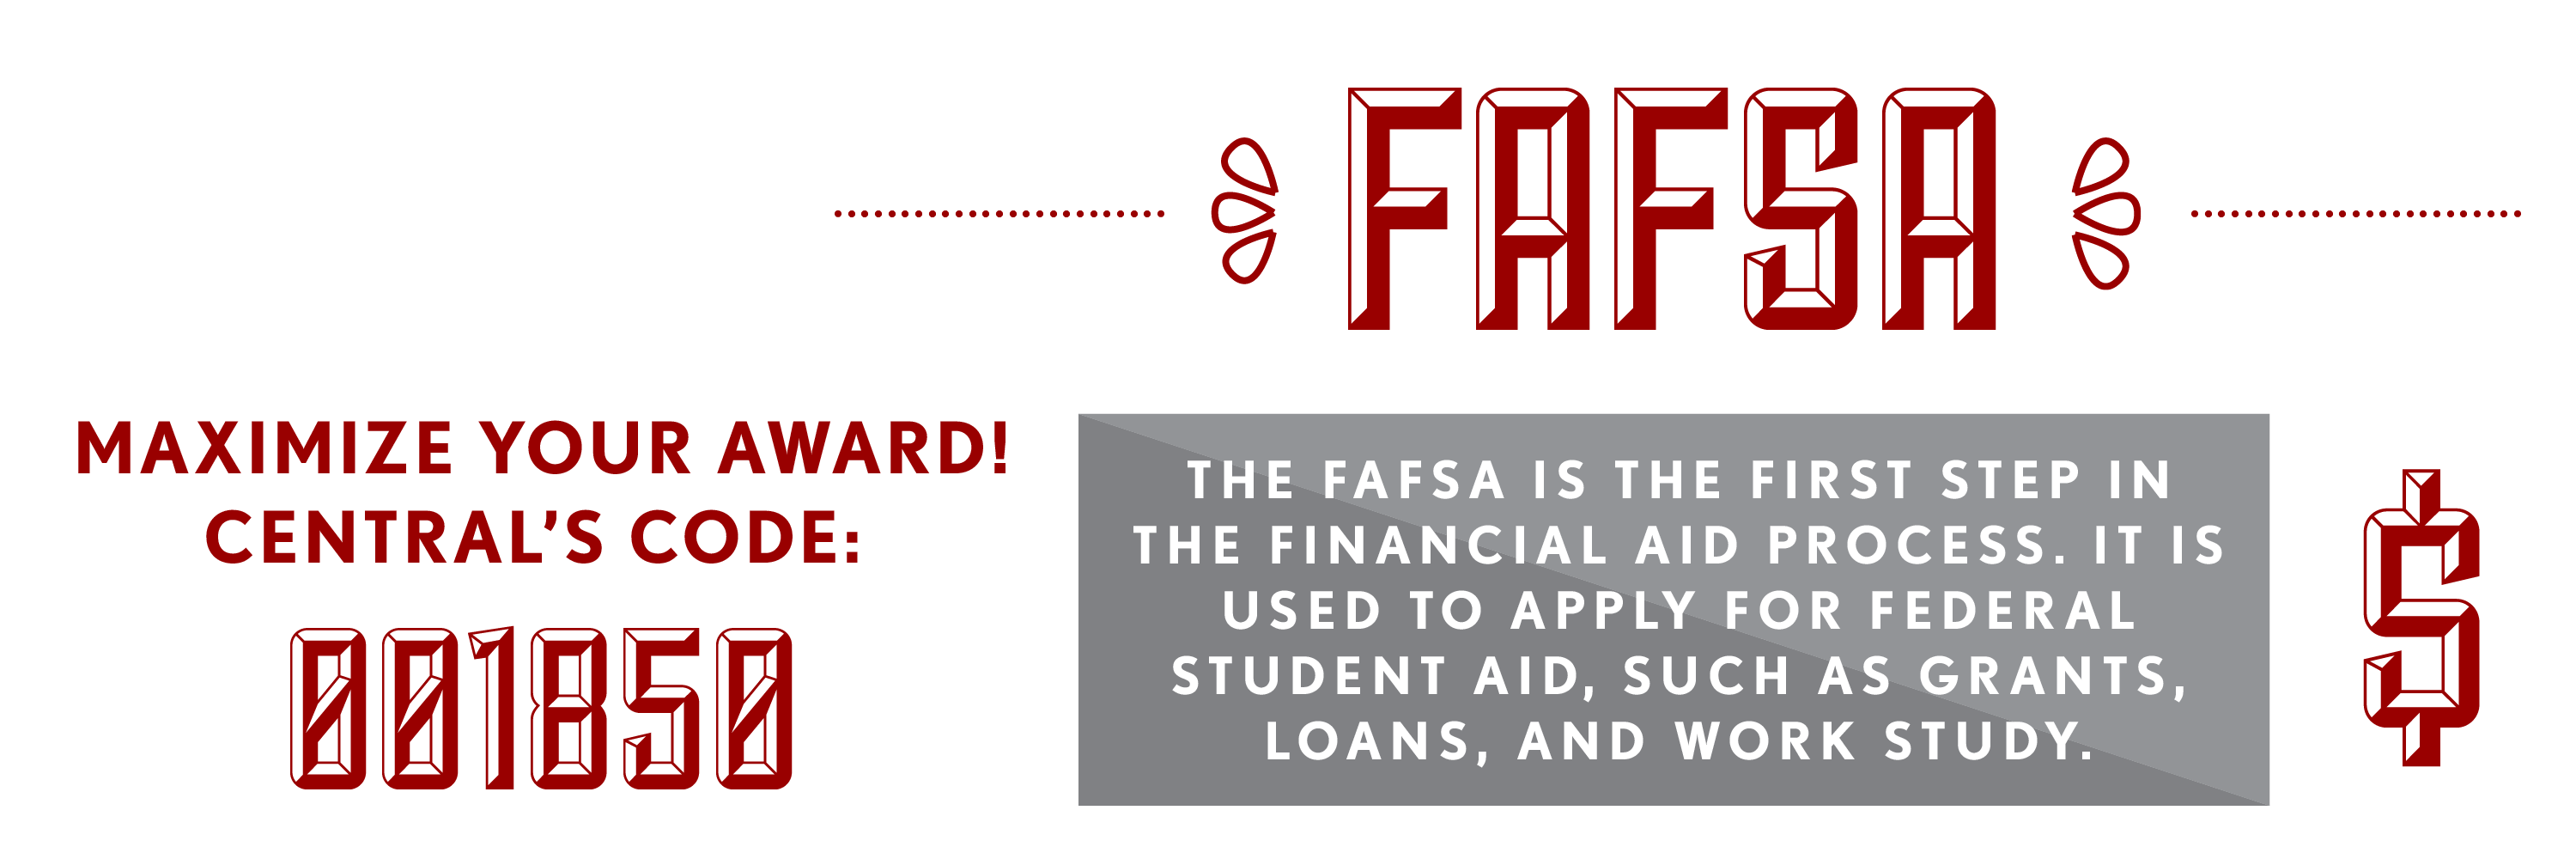 The FAFSA is the first step in the financial aid process. It is used to apply for federal student aid, such as grants, loans and work study. Miximize your award by filing your FAFSA today using Central's code: 001850.